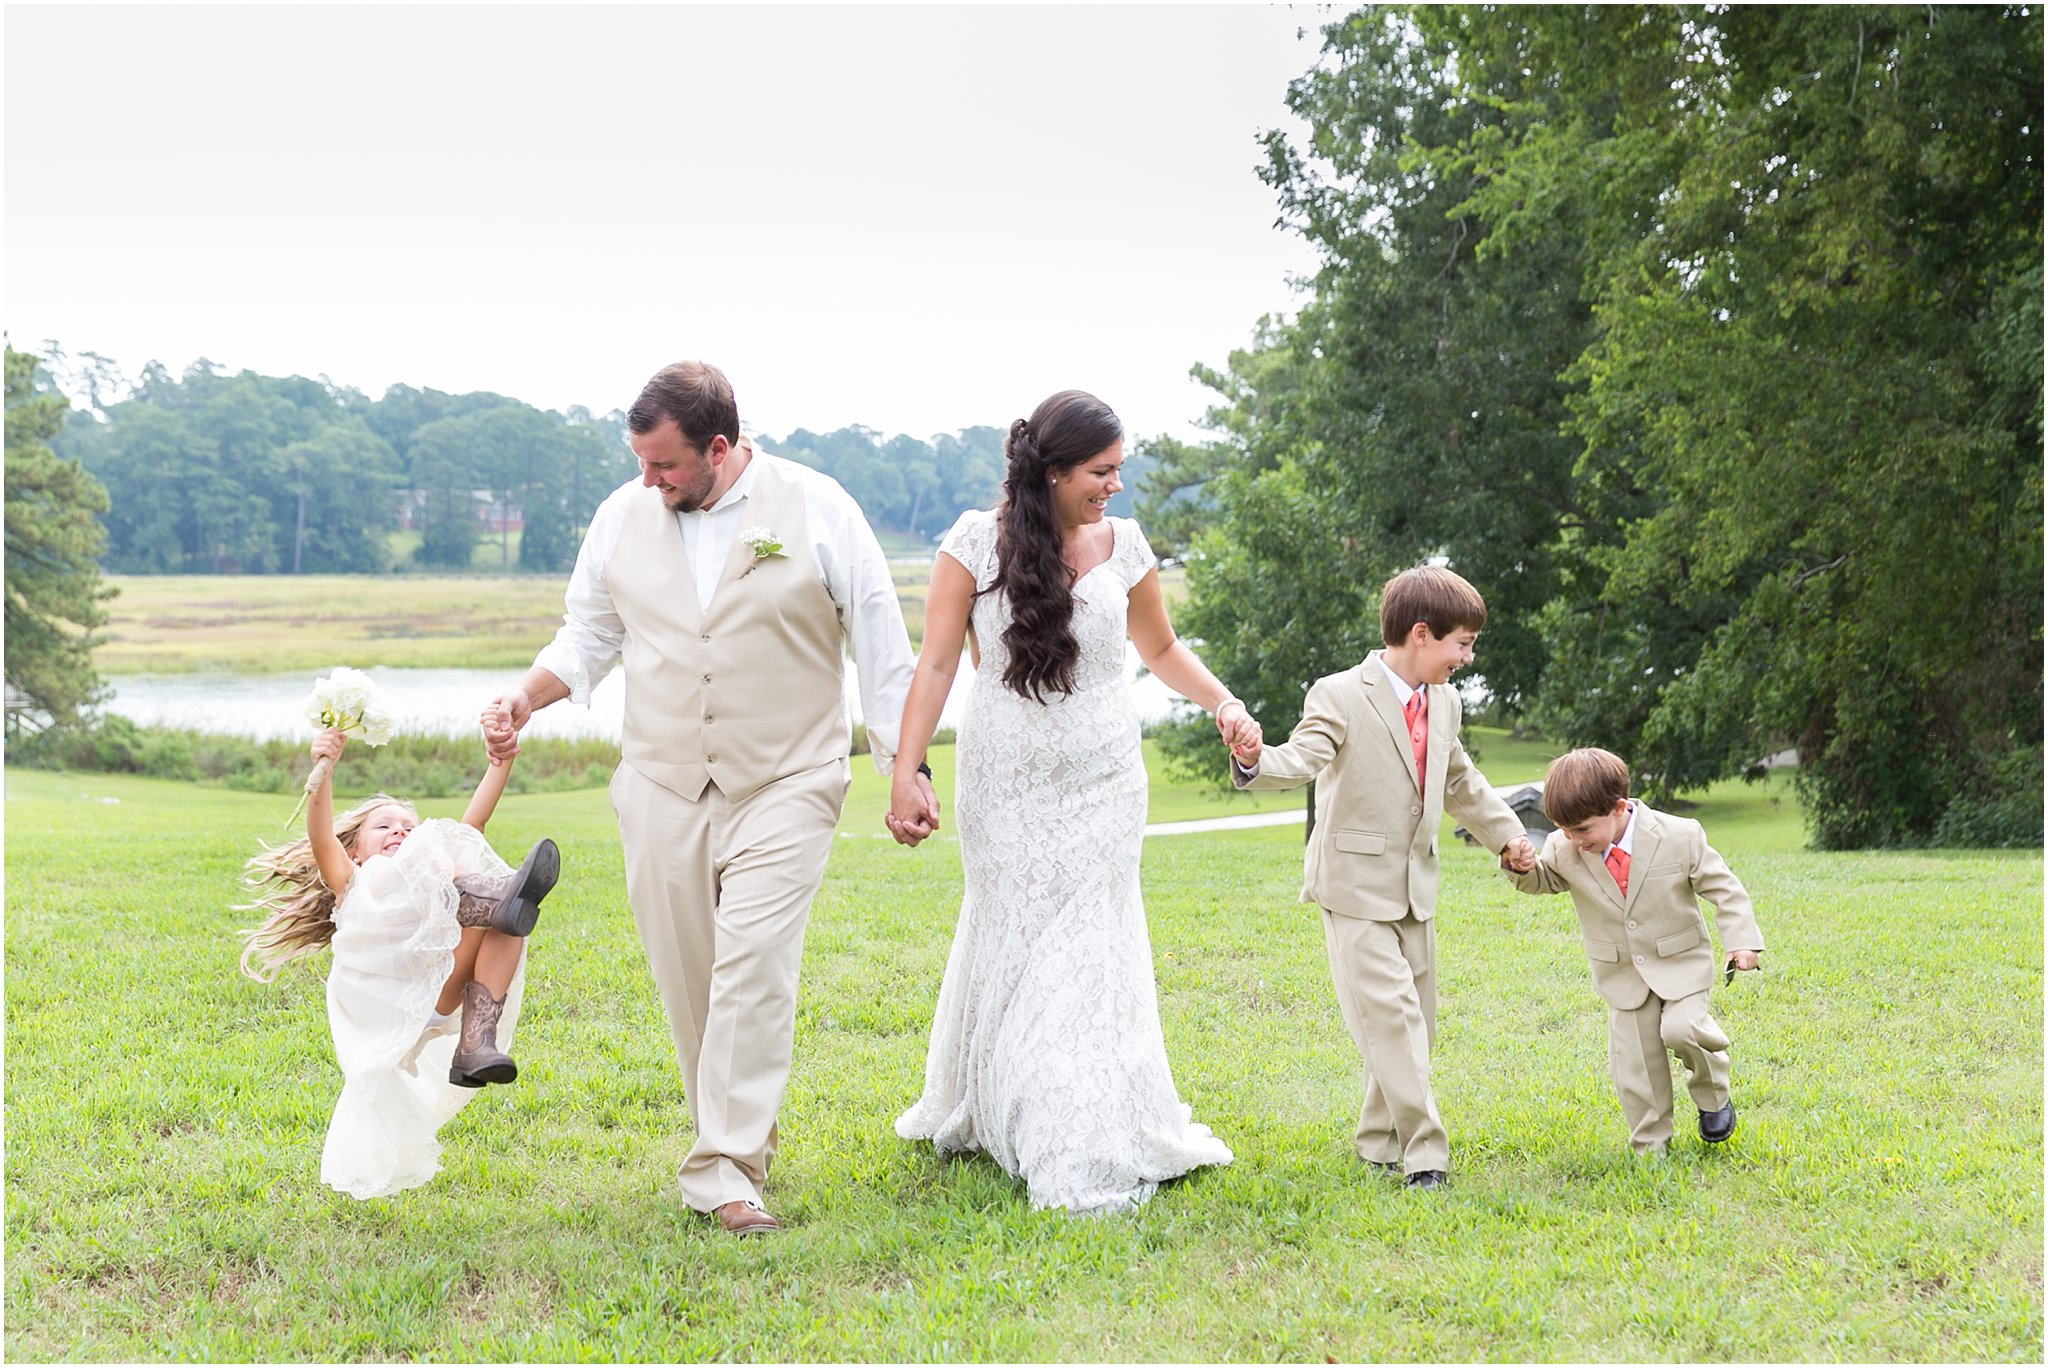 jessica_ryan_photography_wedding_hampton_roads_virginia_virginia_beach_weddings_0612